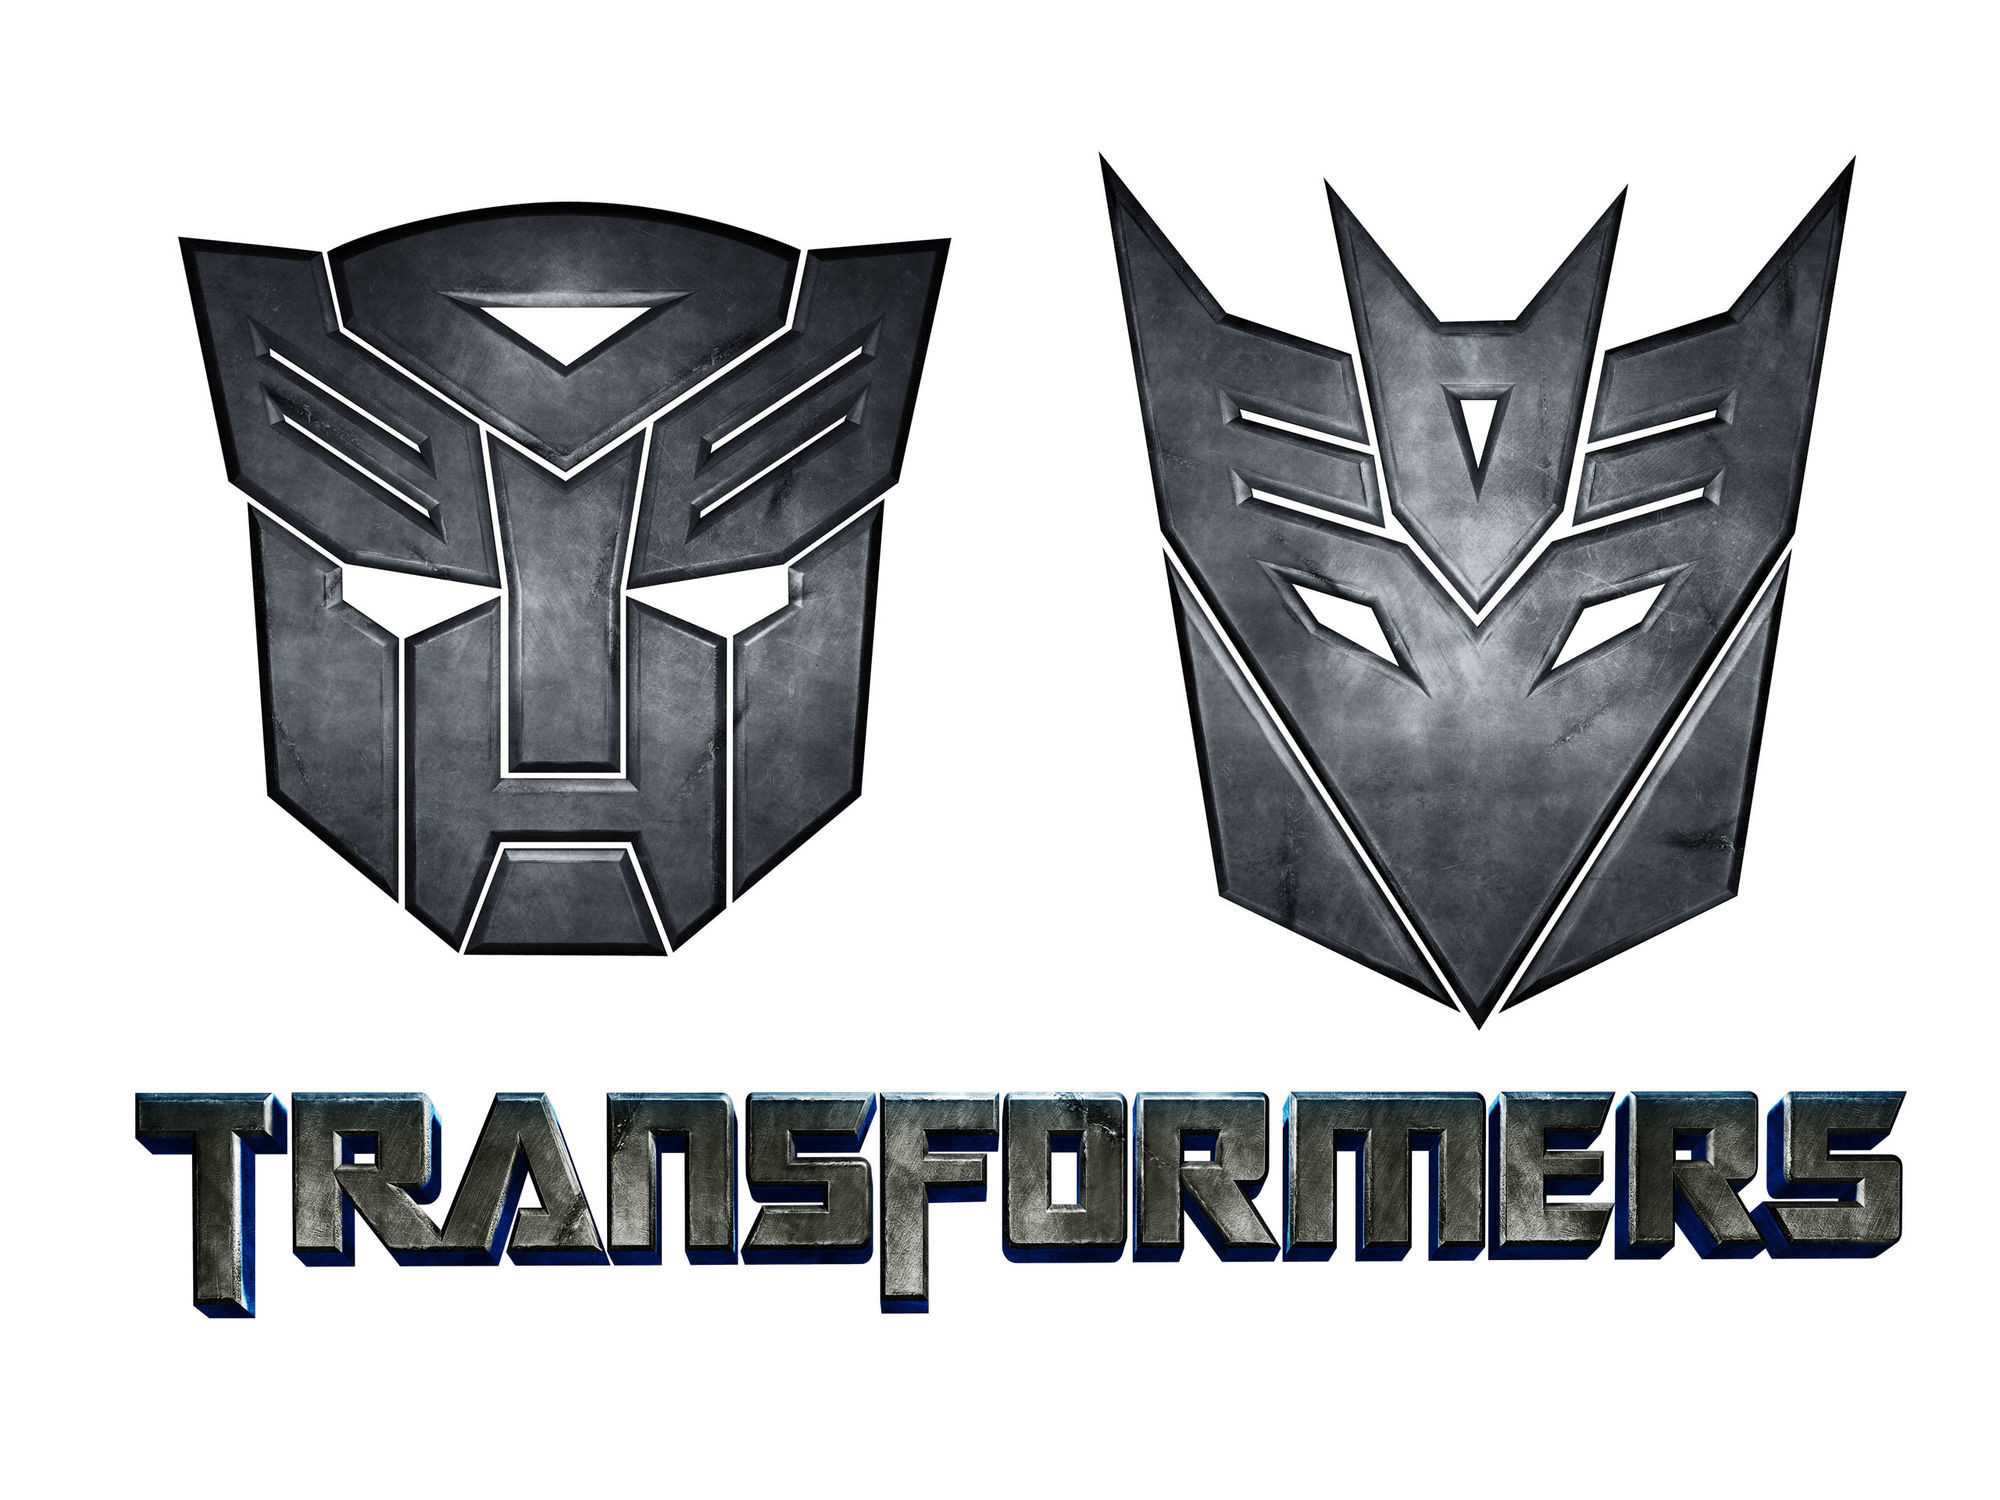 2000x1500 Image - Transformers-Logo-Wallpapers.jpg | Transformers Legends Wiki |  FANDOM powered by Wikia